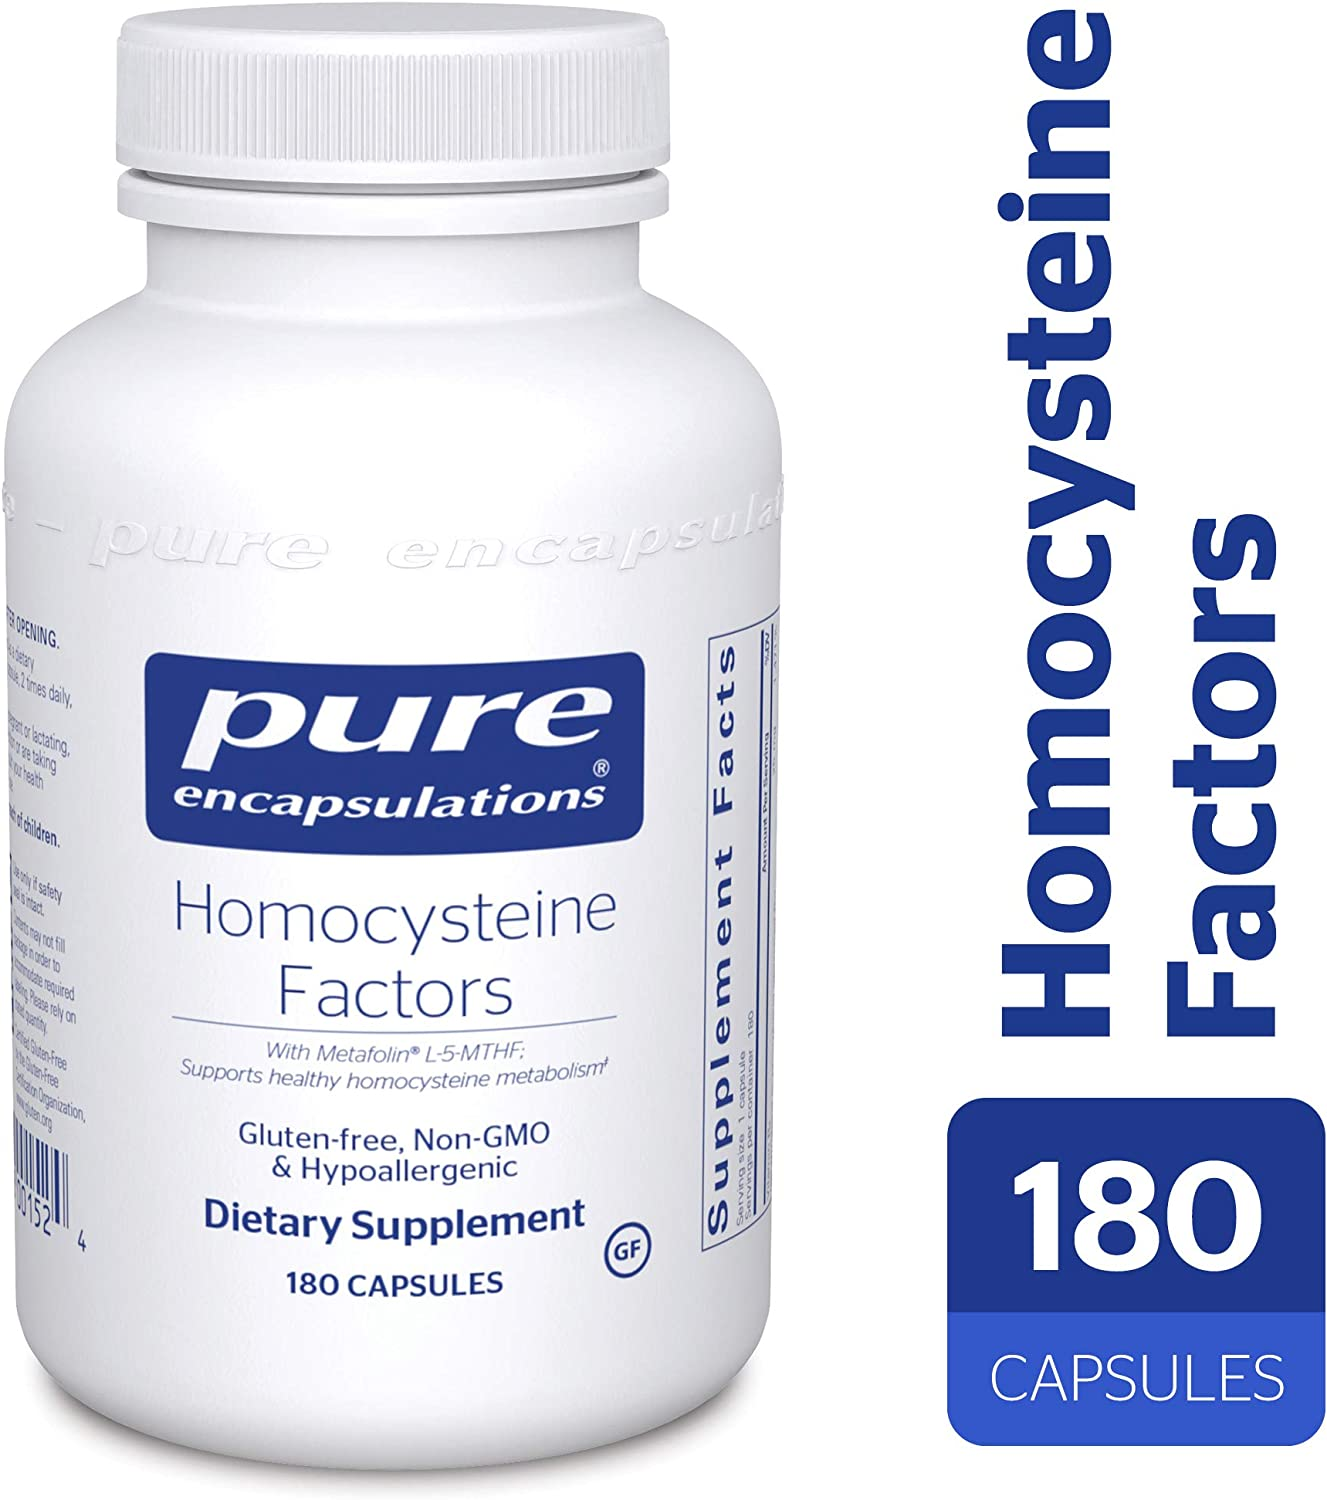 Pure Encapsulations – Homocysteine Factors – Hypoallergenic Supplement Helps Maintain Normal Homocysteine Levels and Cardiovascular Health* – 180 Capsules